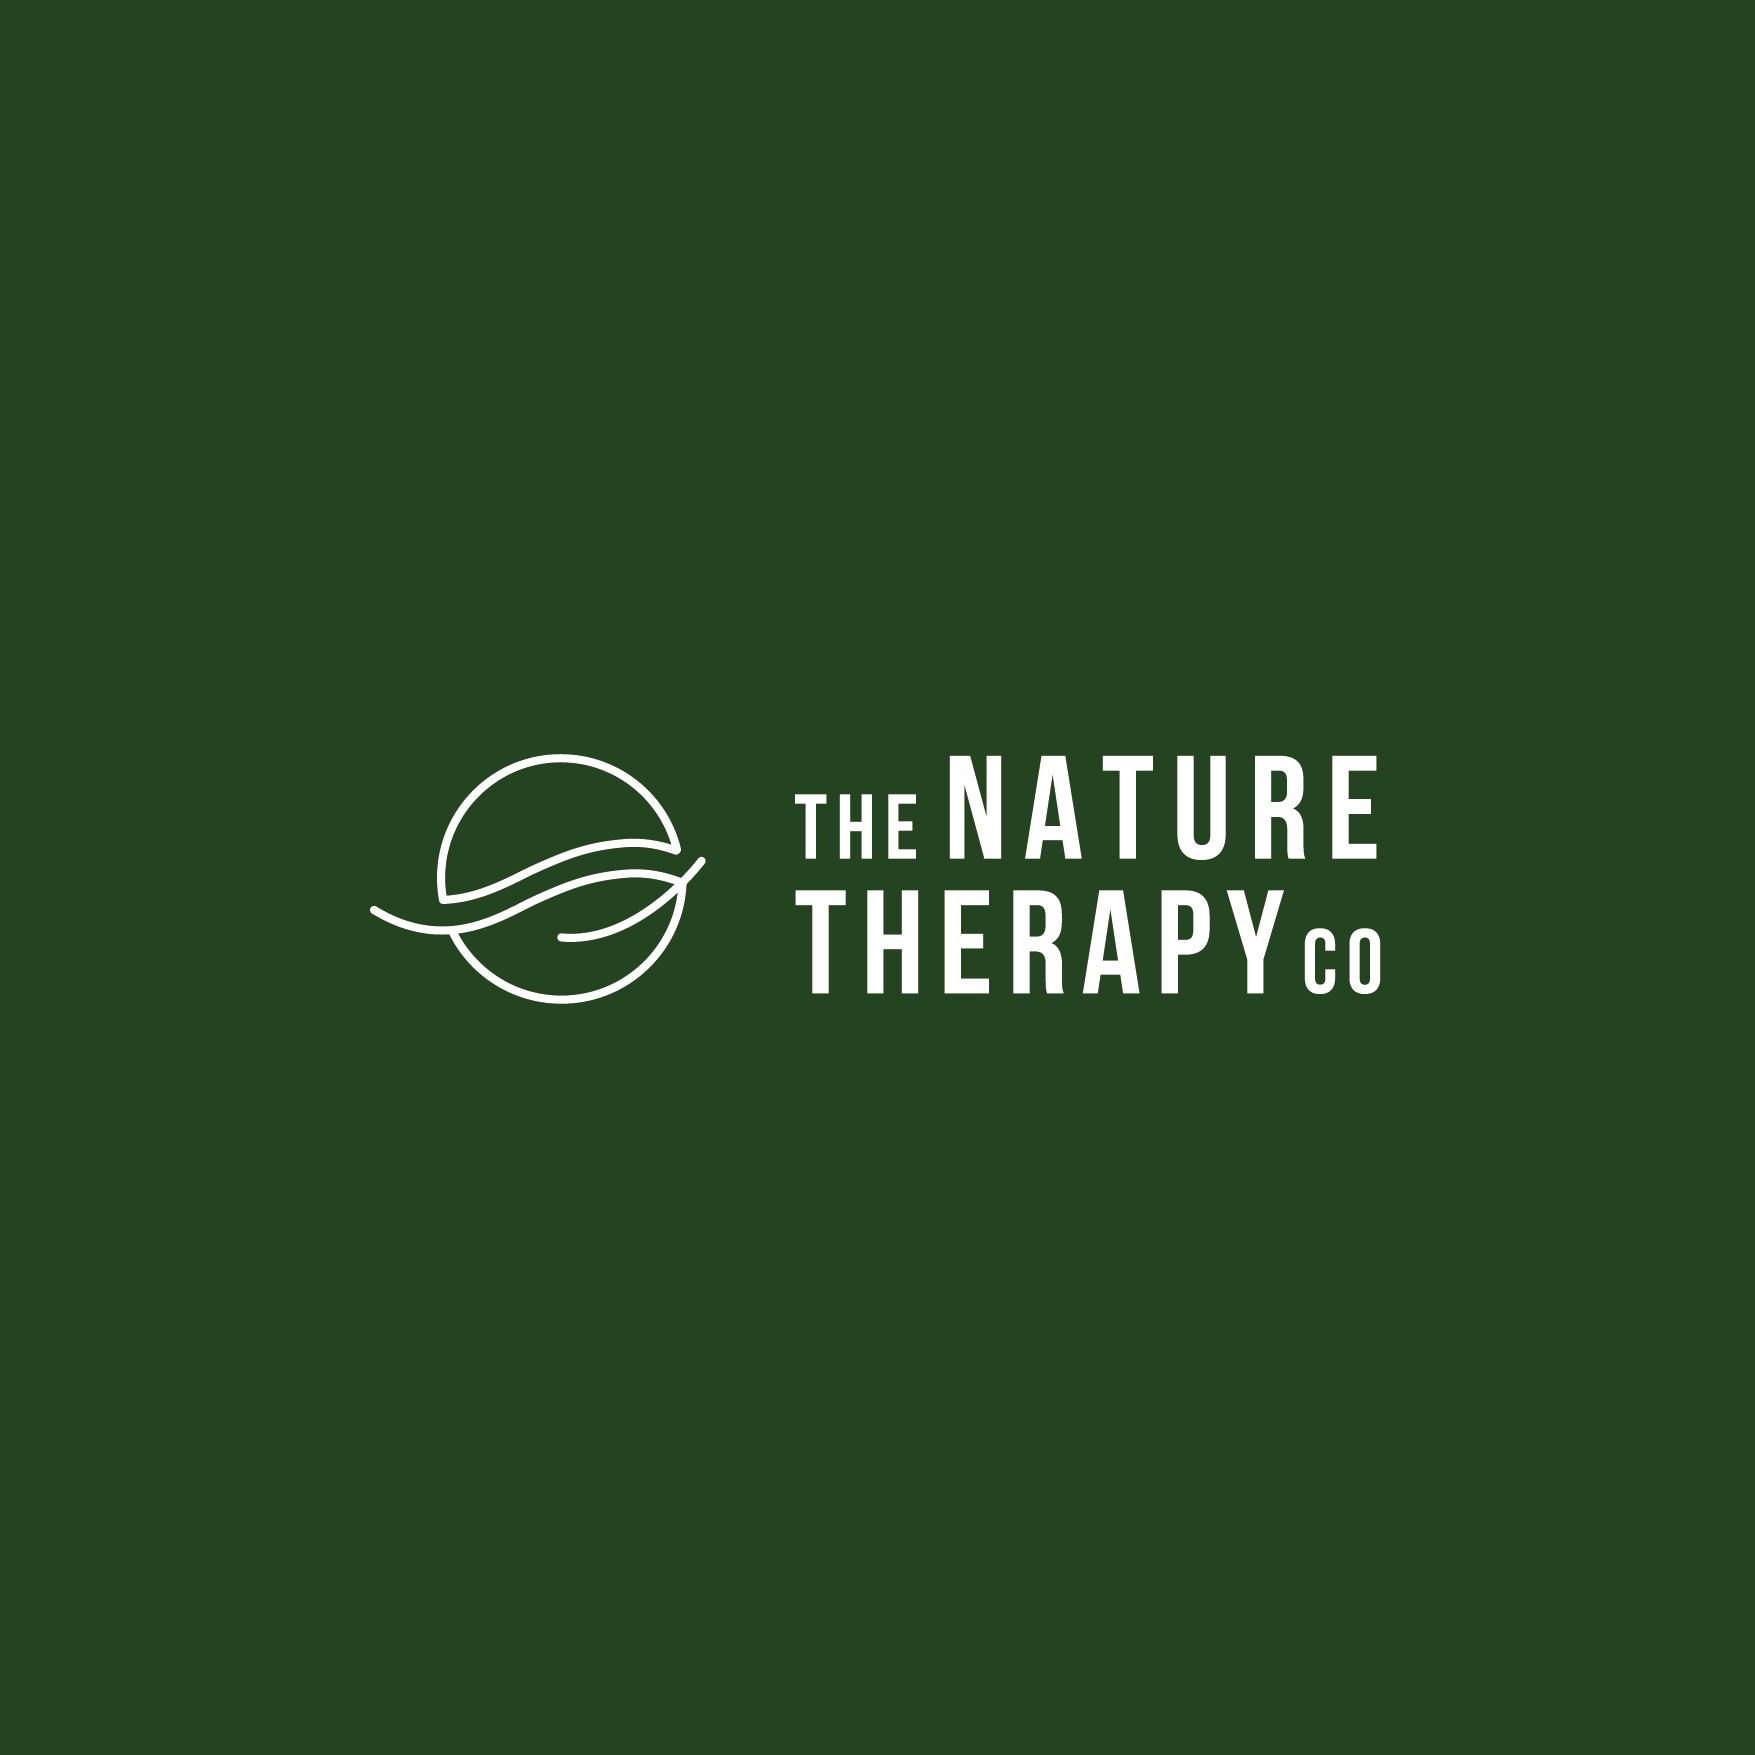 The Nature Therapy Co